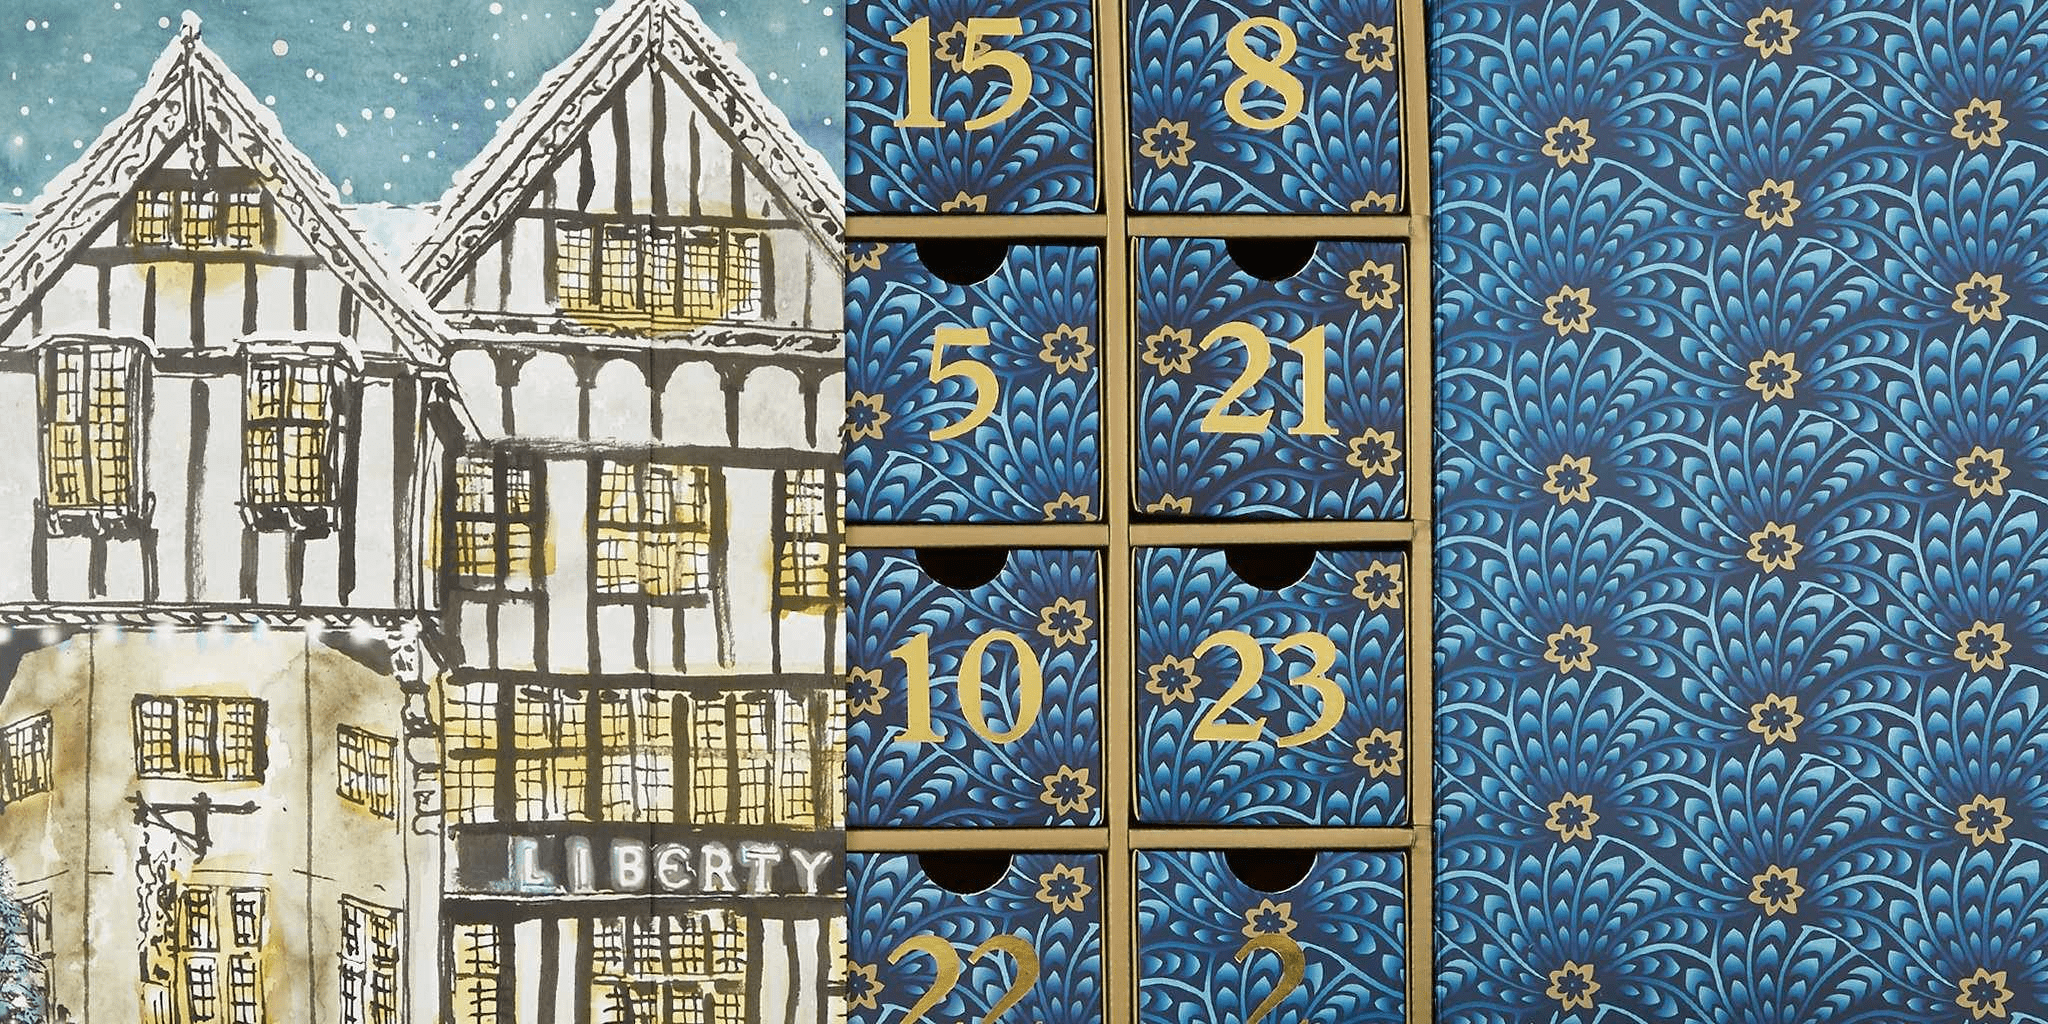 2017 Liberty Beauty Advent Calendar Available Now + Full Spoilers!